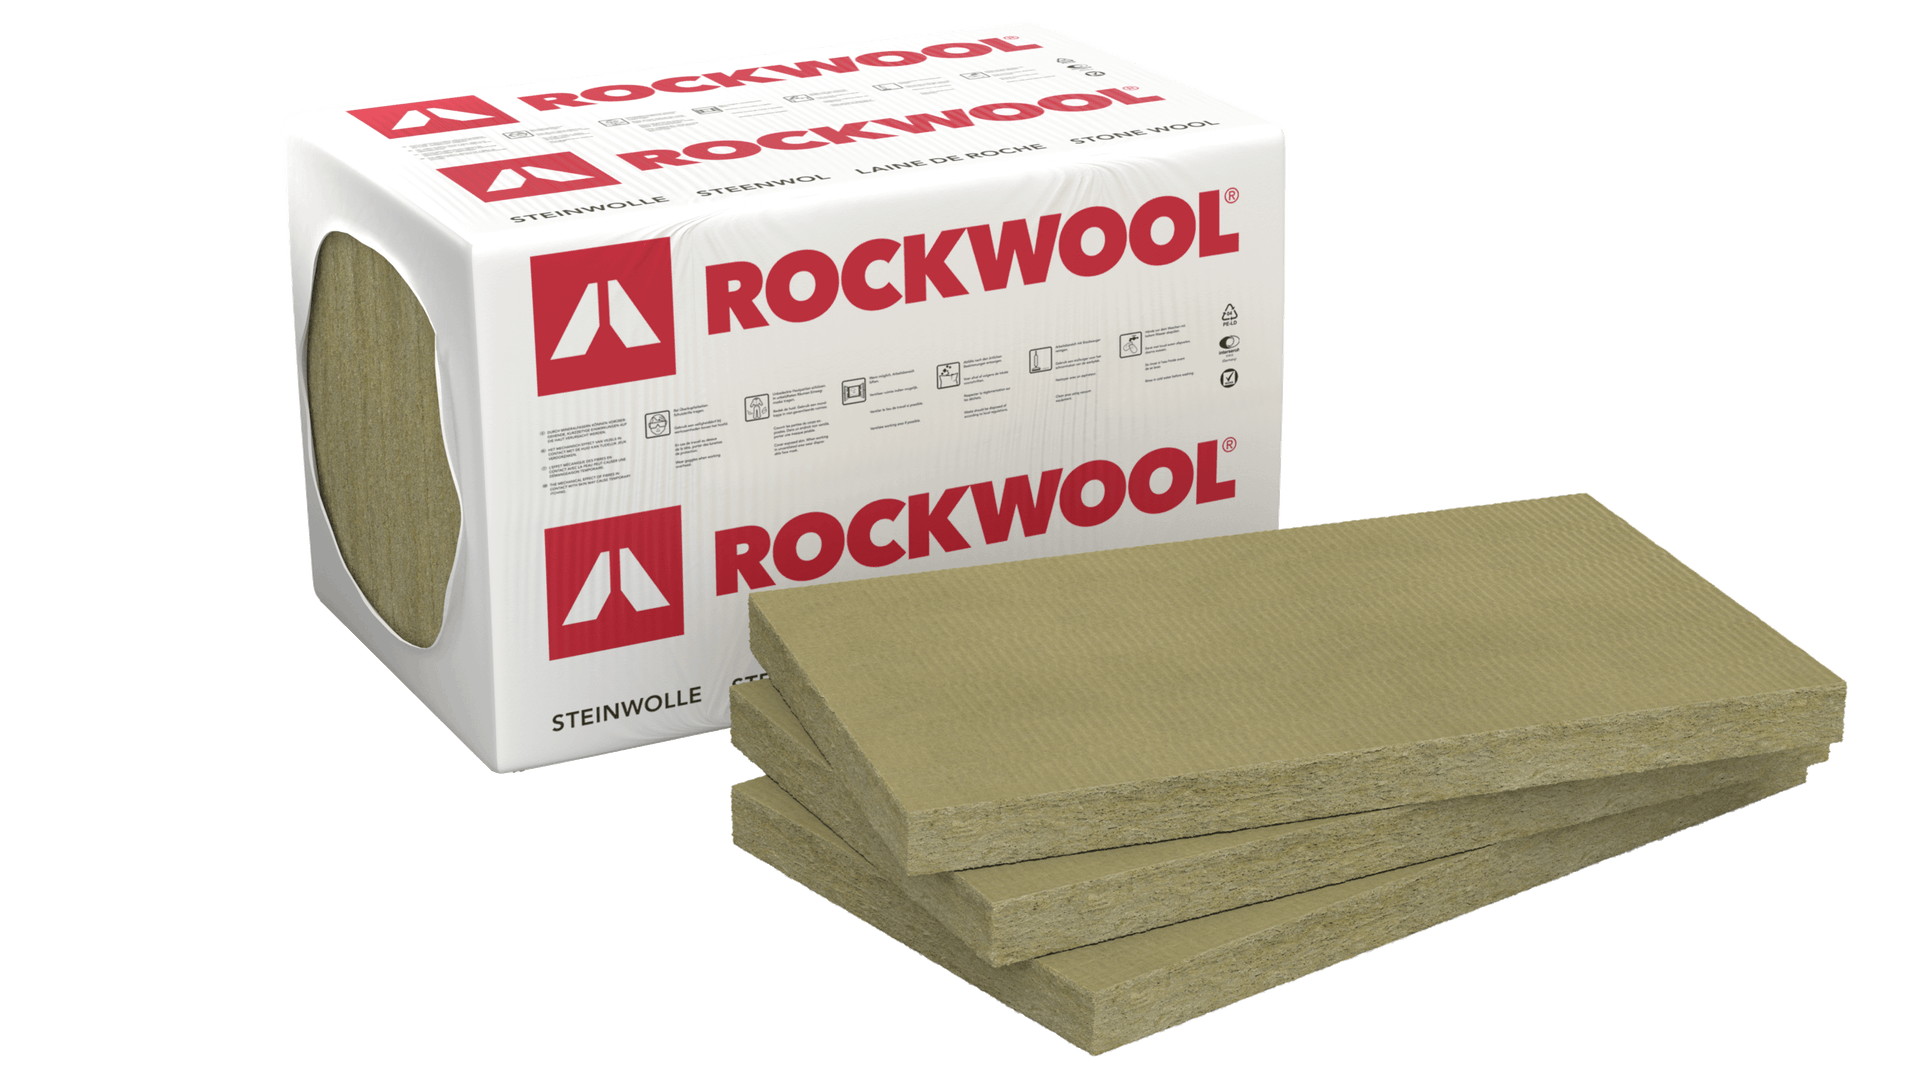 product, product page, germany, gbi, sonorock akustik, packaged, composition